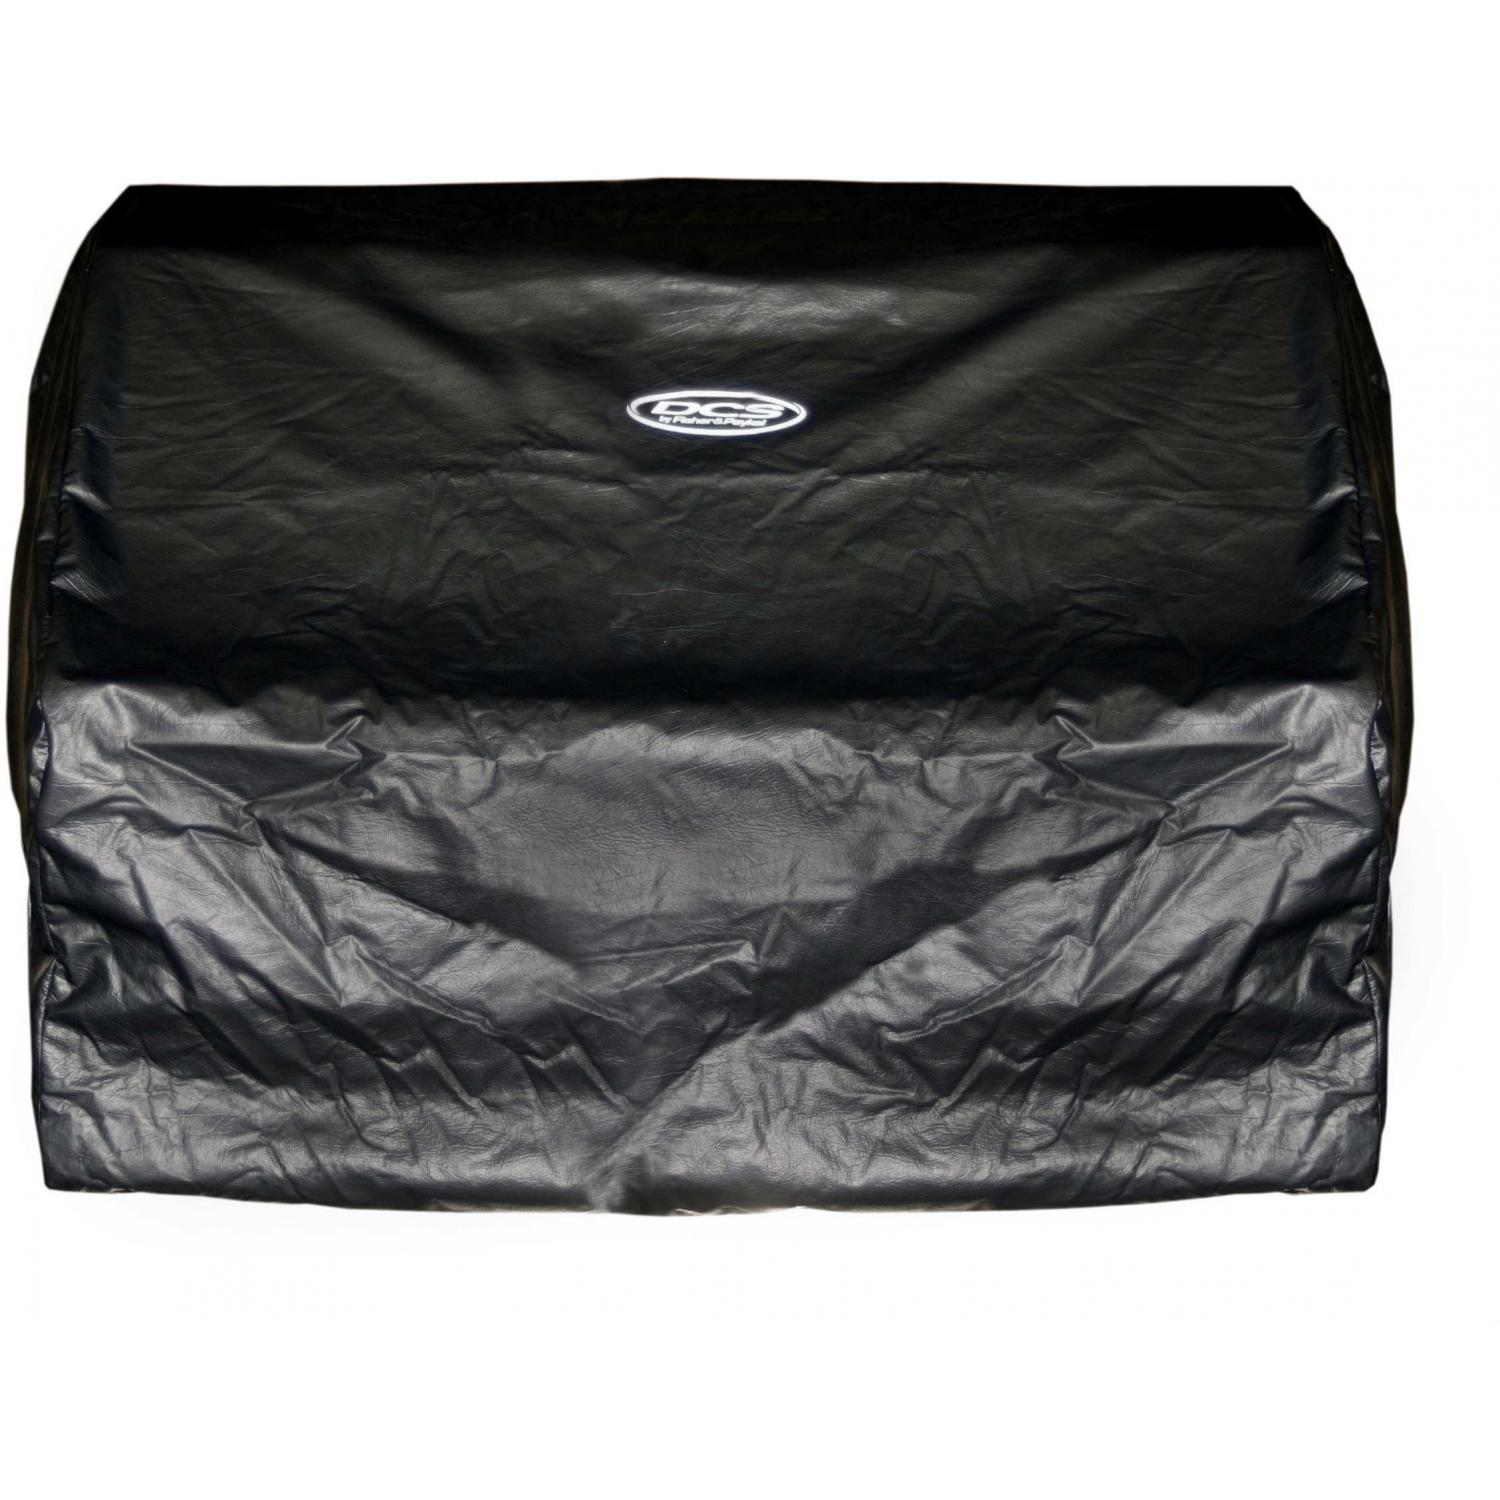 DCS Grill Cover For 30 Inch Gas Grill Built In BGB30VCBI